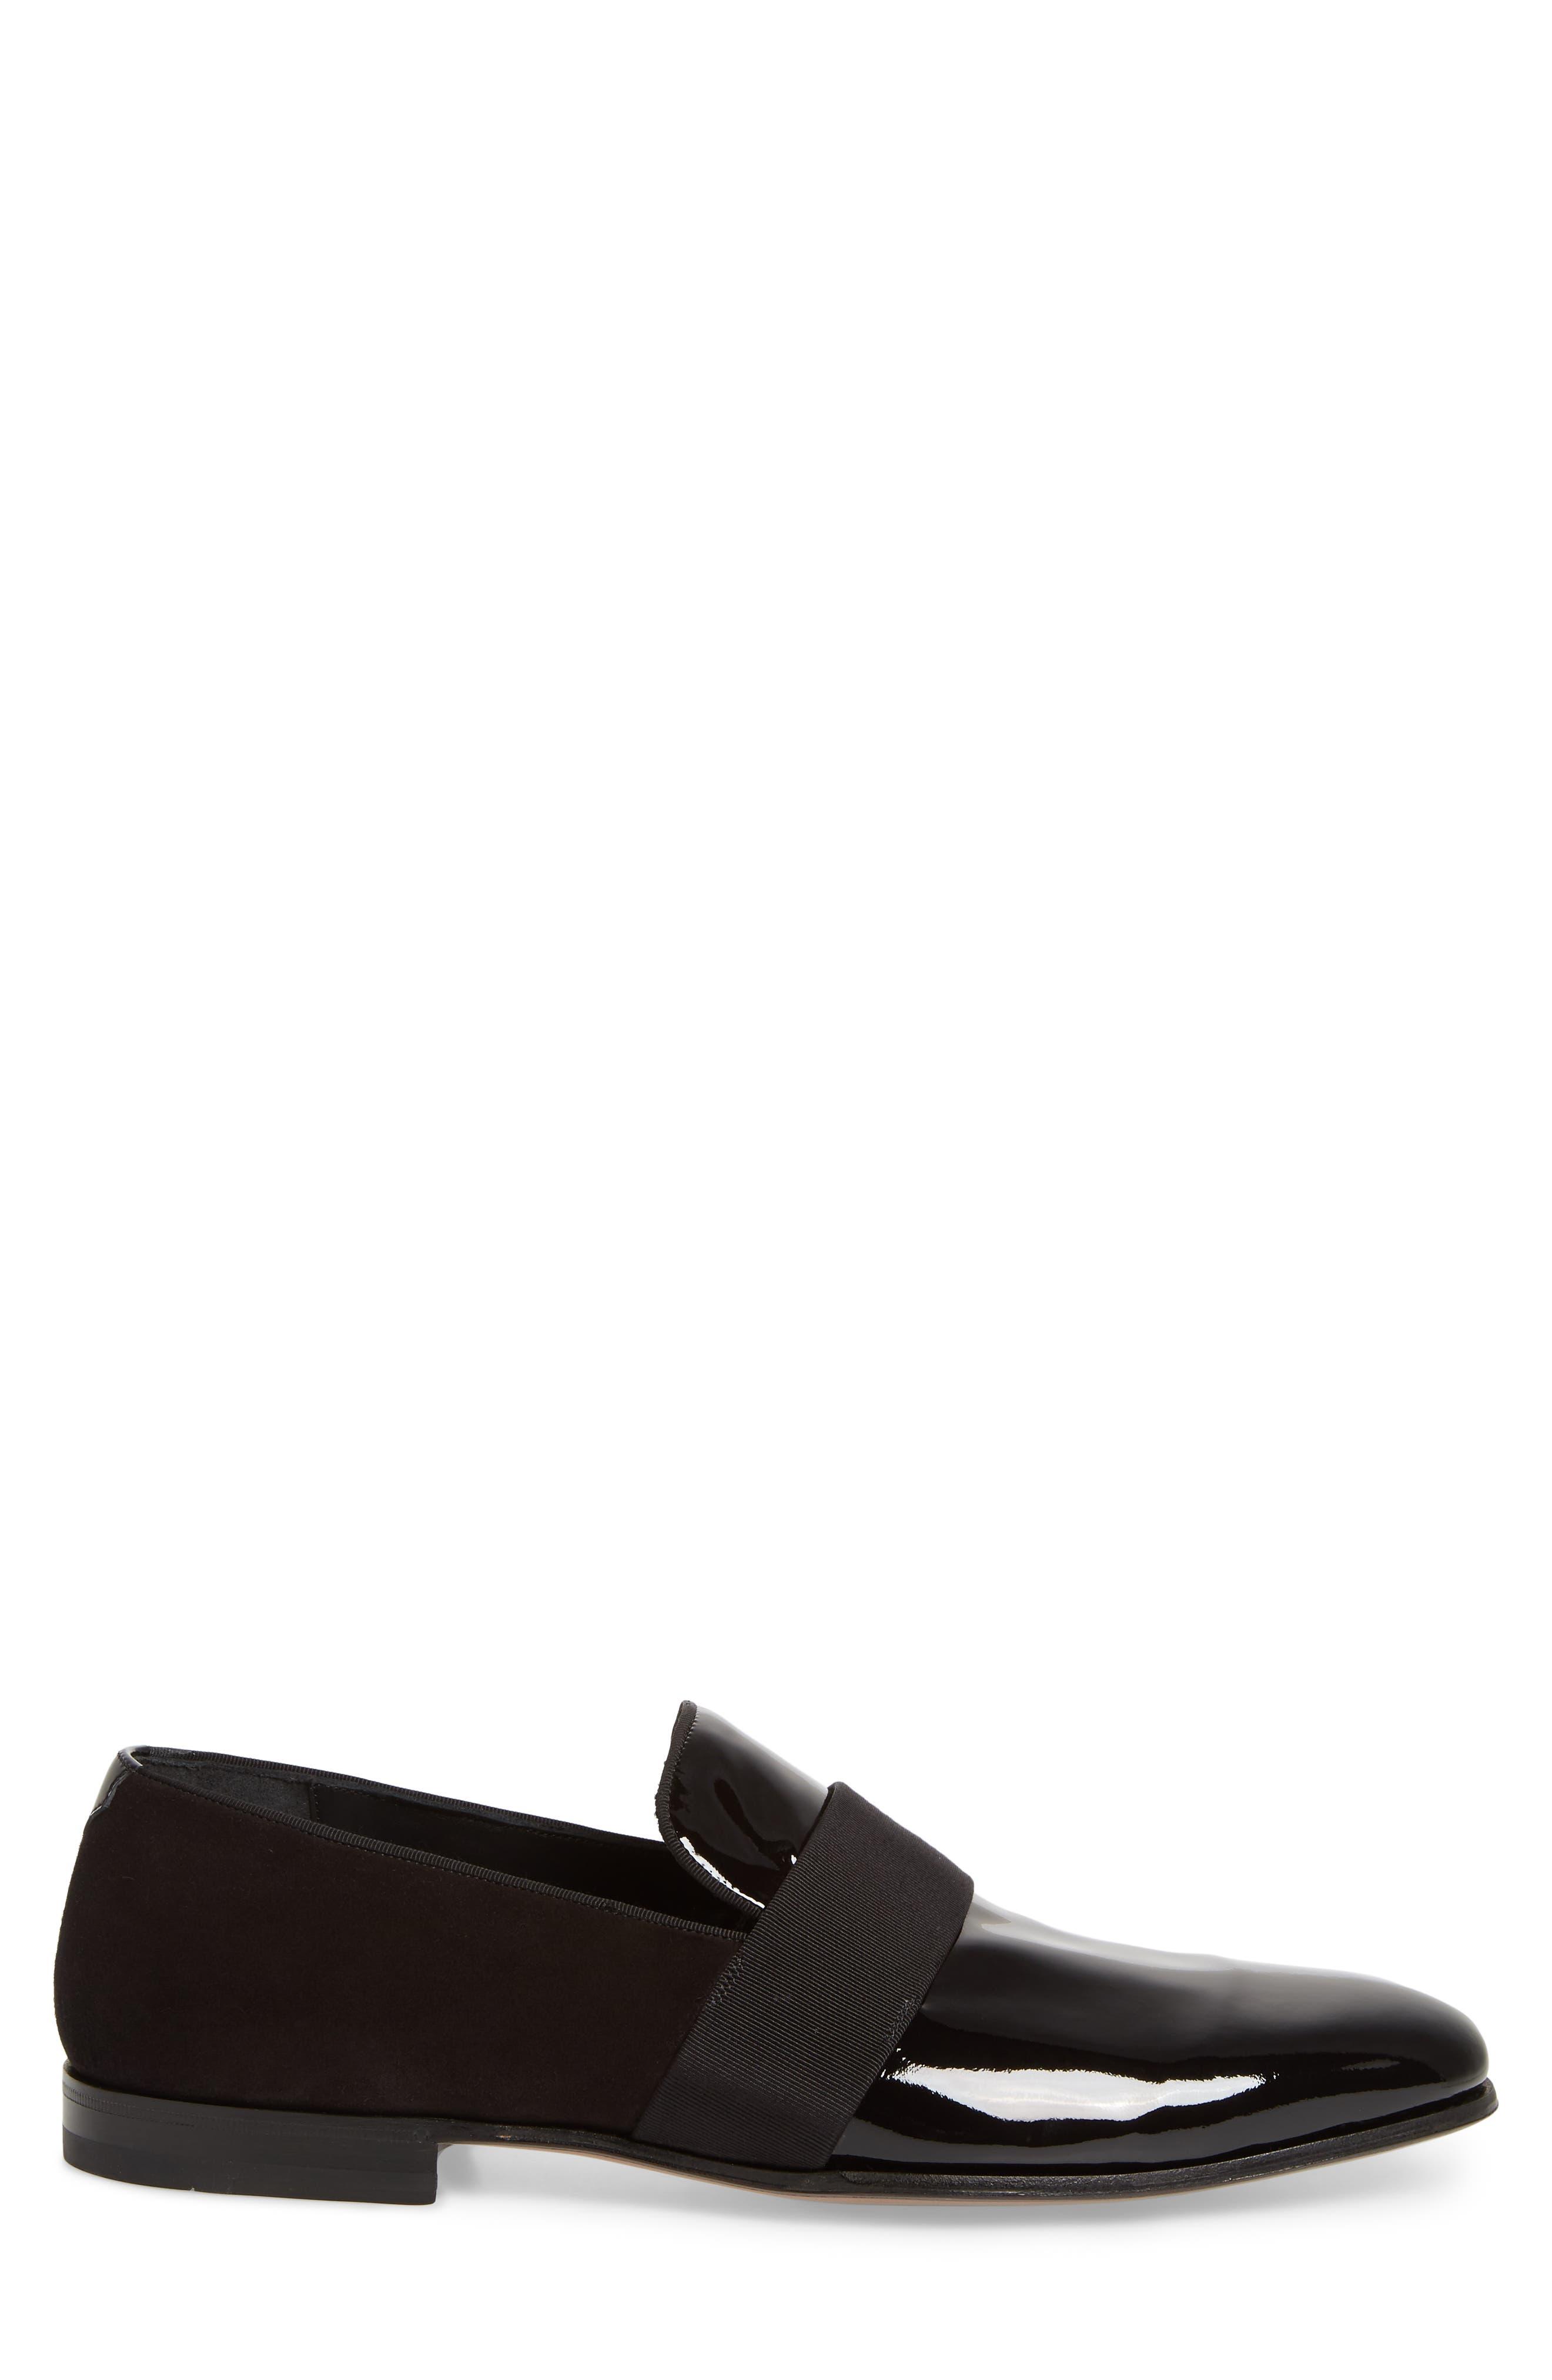 SALVATORE FERRAGAMO, Bryden Banded Loafer, Alternate thumbnail 3, color, NERO